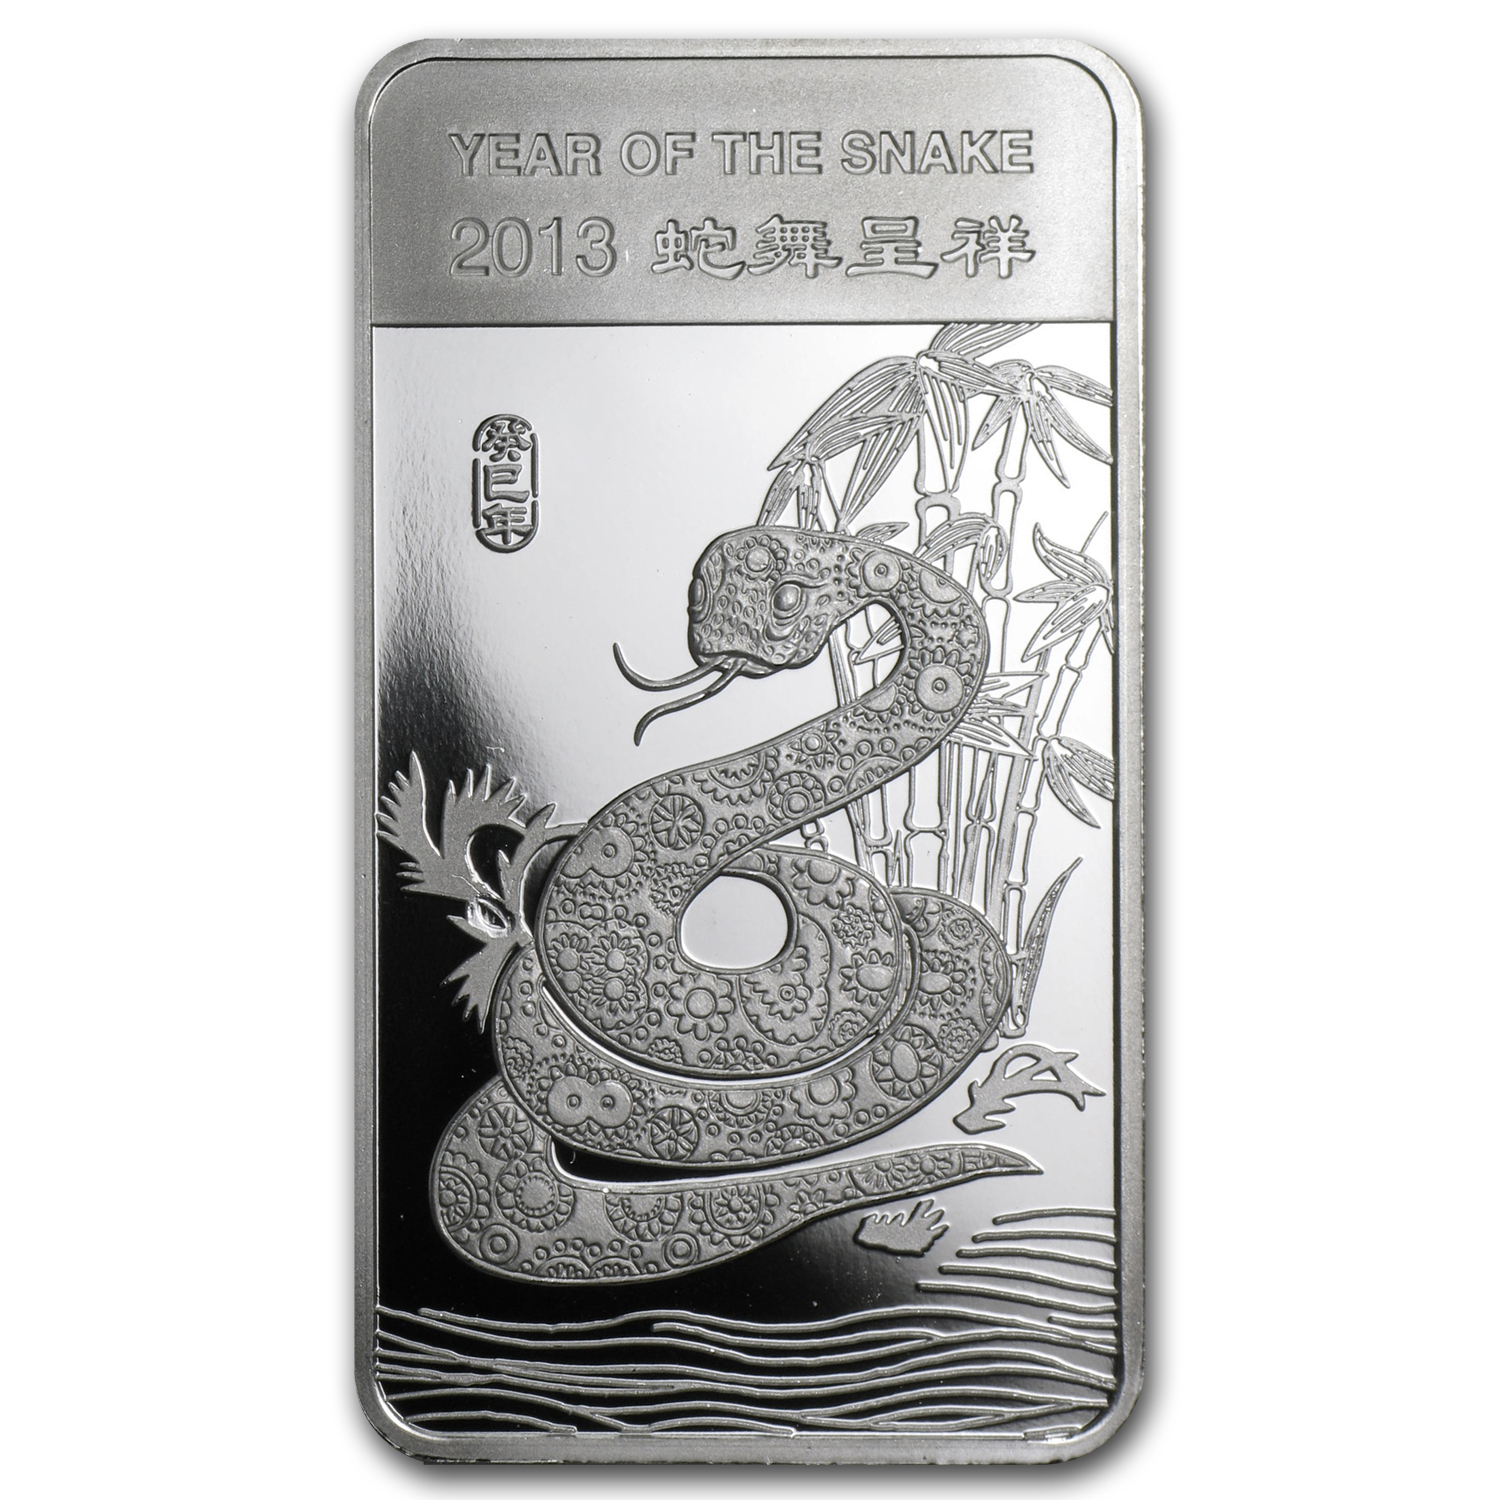 1/2 oz Silver Bar - APMEX (2013 Year of the Snake)